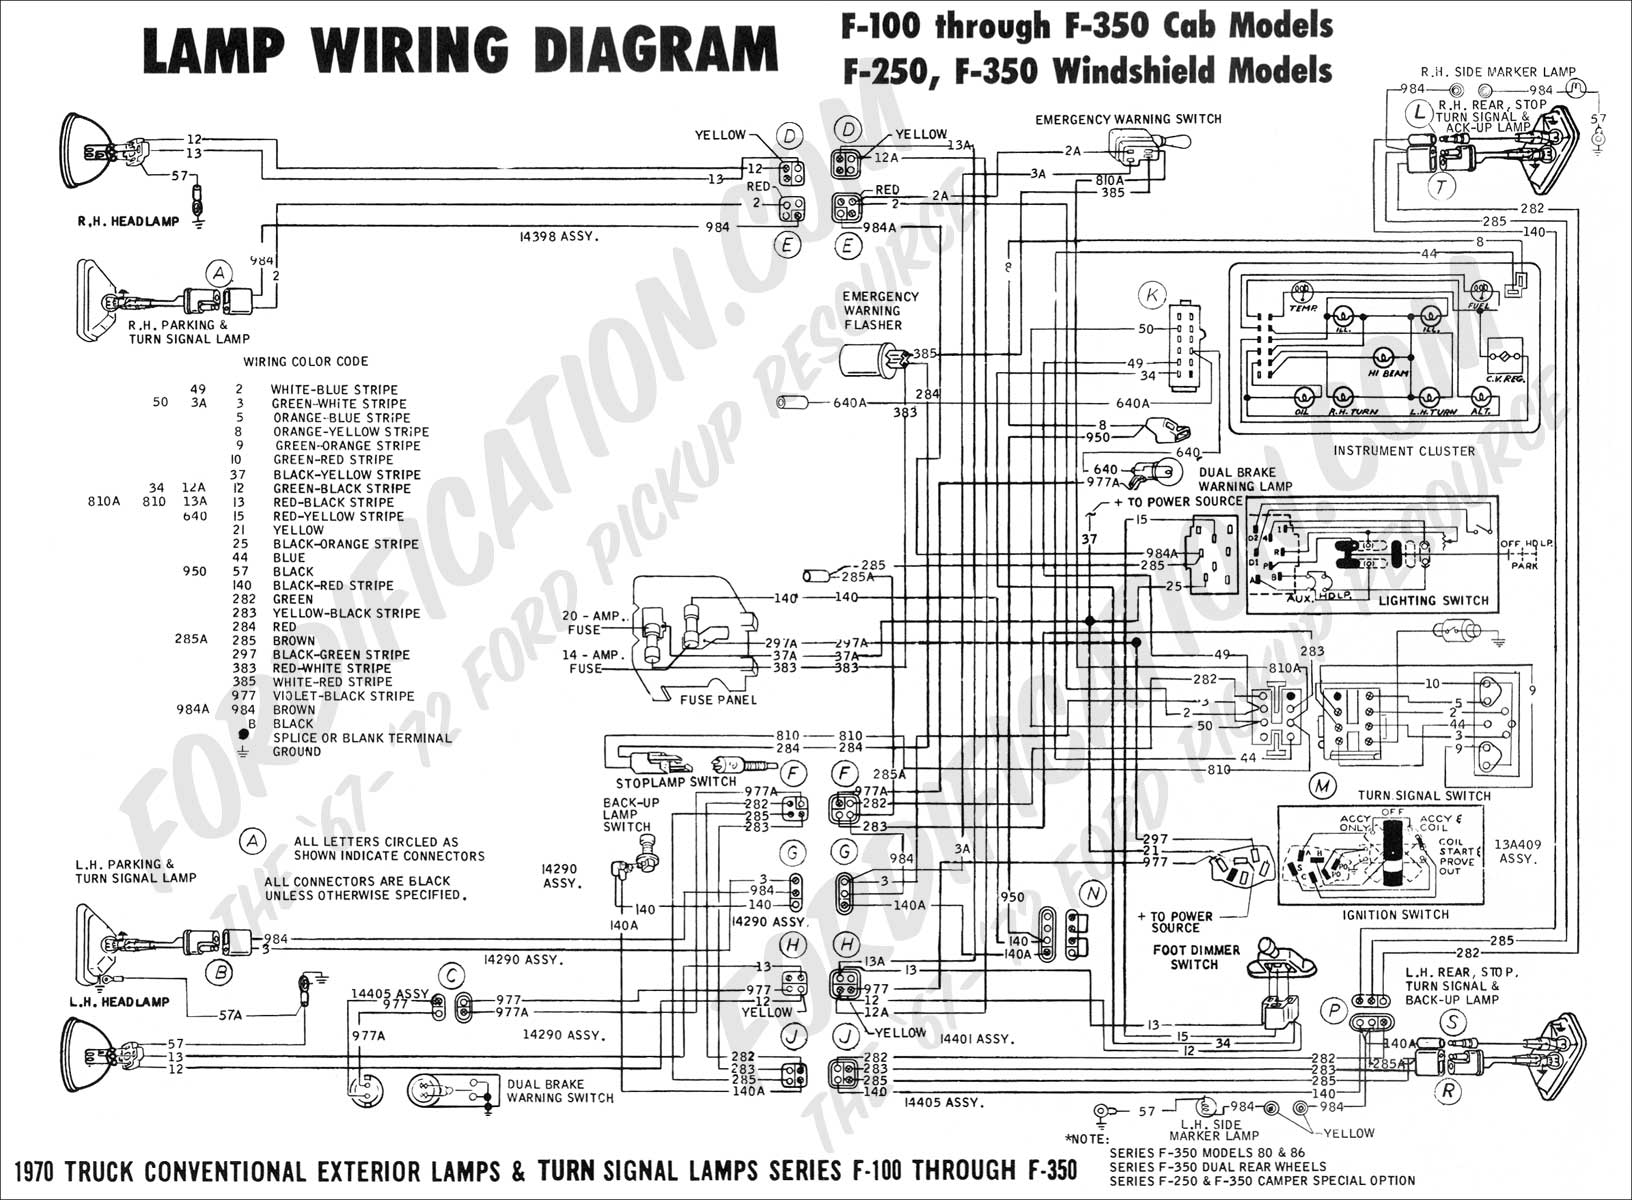 wiring diagram_70ext lights01 1986 ford f250 wiring diagram ford truck fuel system diagram ford f250 wiring diagram online at readyjetset.co